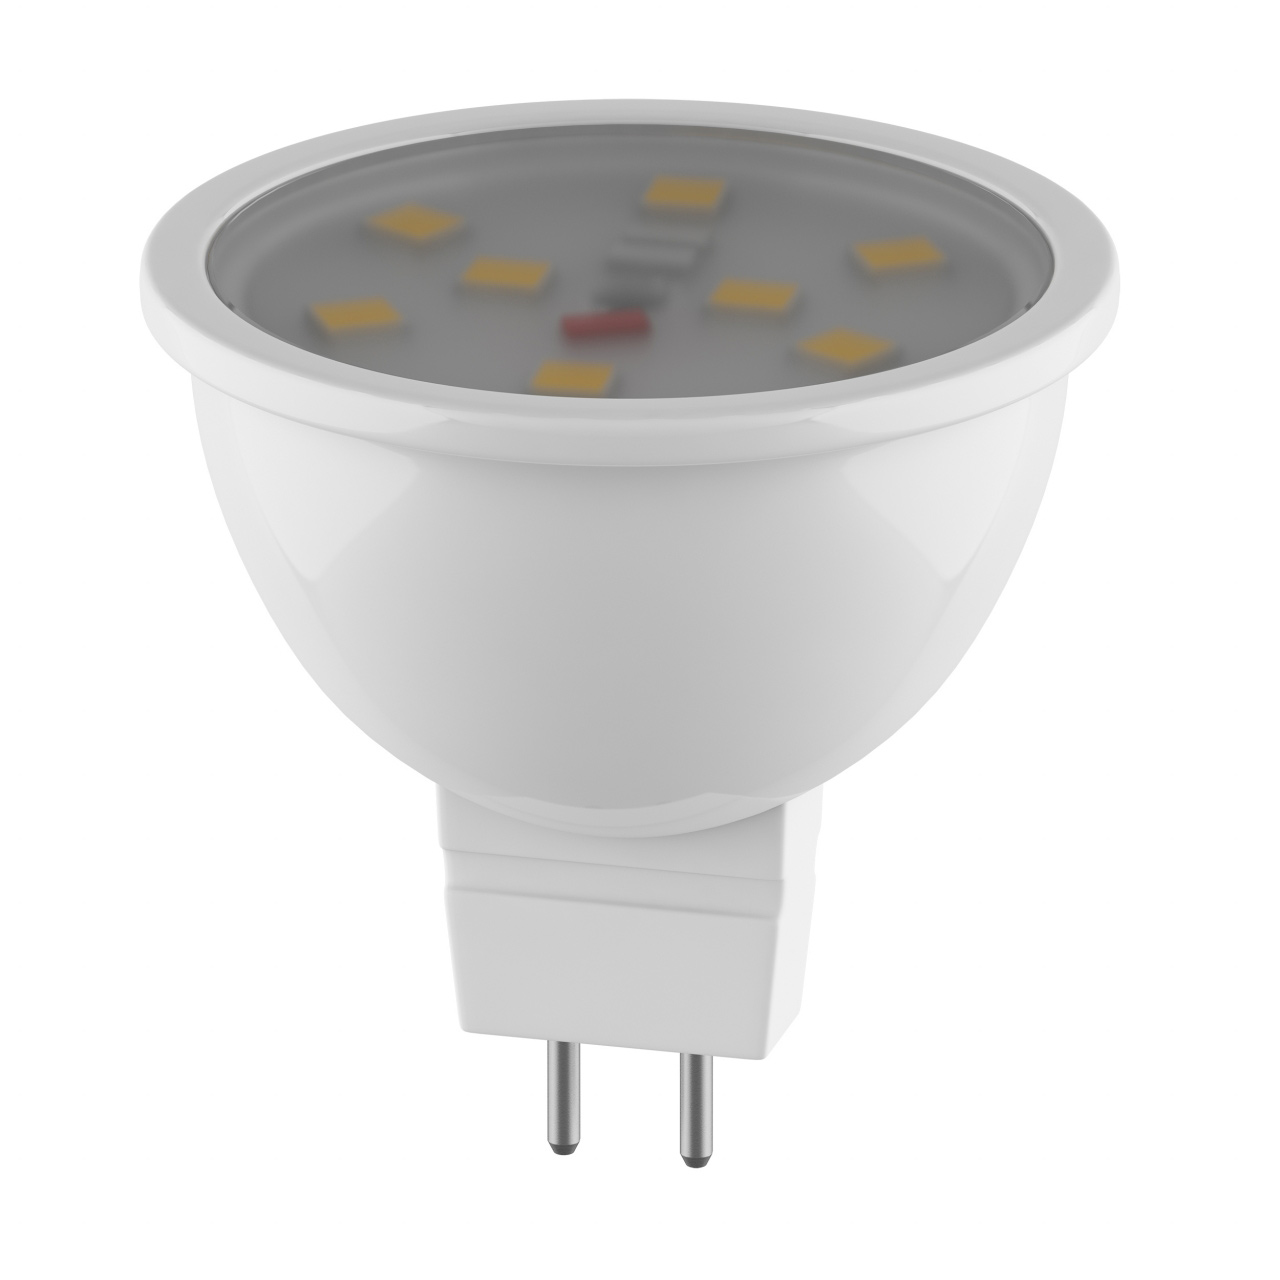 Светодиодная LED лампа G5.3, 220V MR11 3W - 3000K, Lightstar 940902